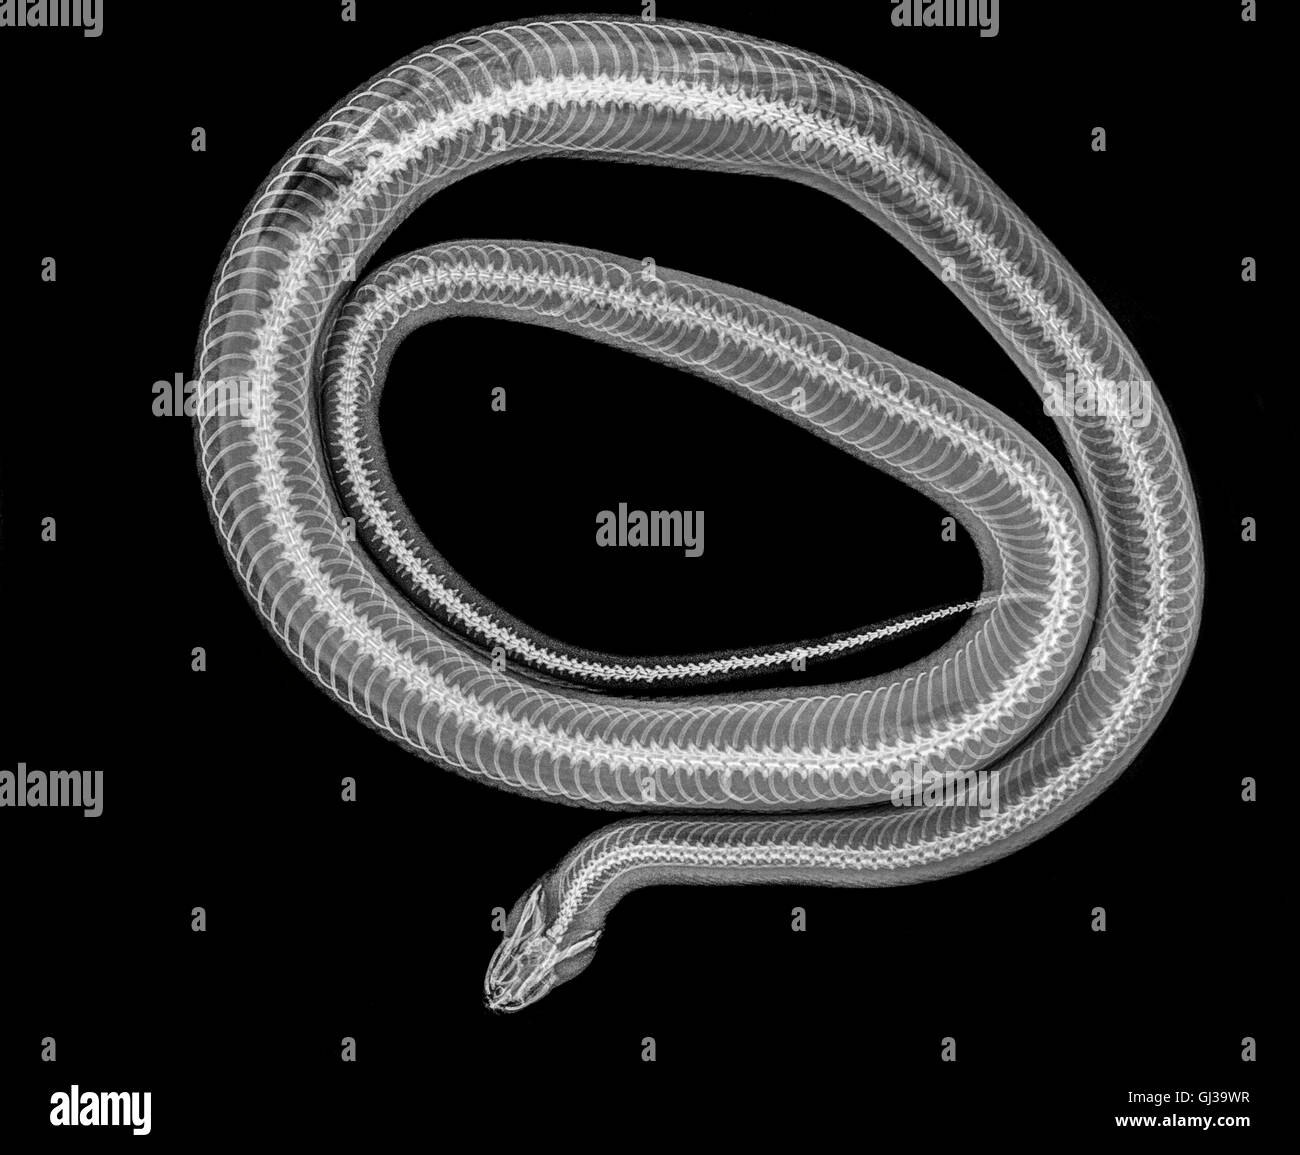 X-ray of a snake digesting a mouse - Stock Image